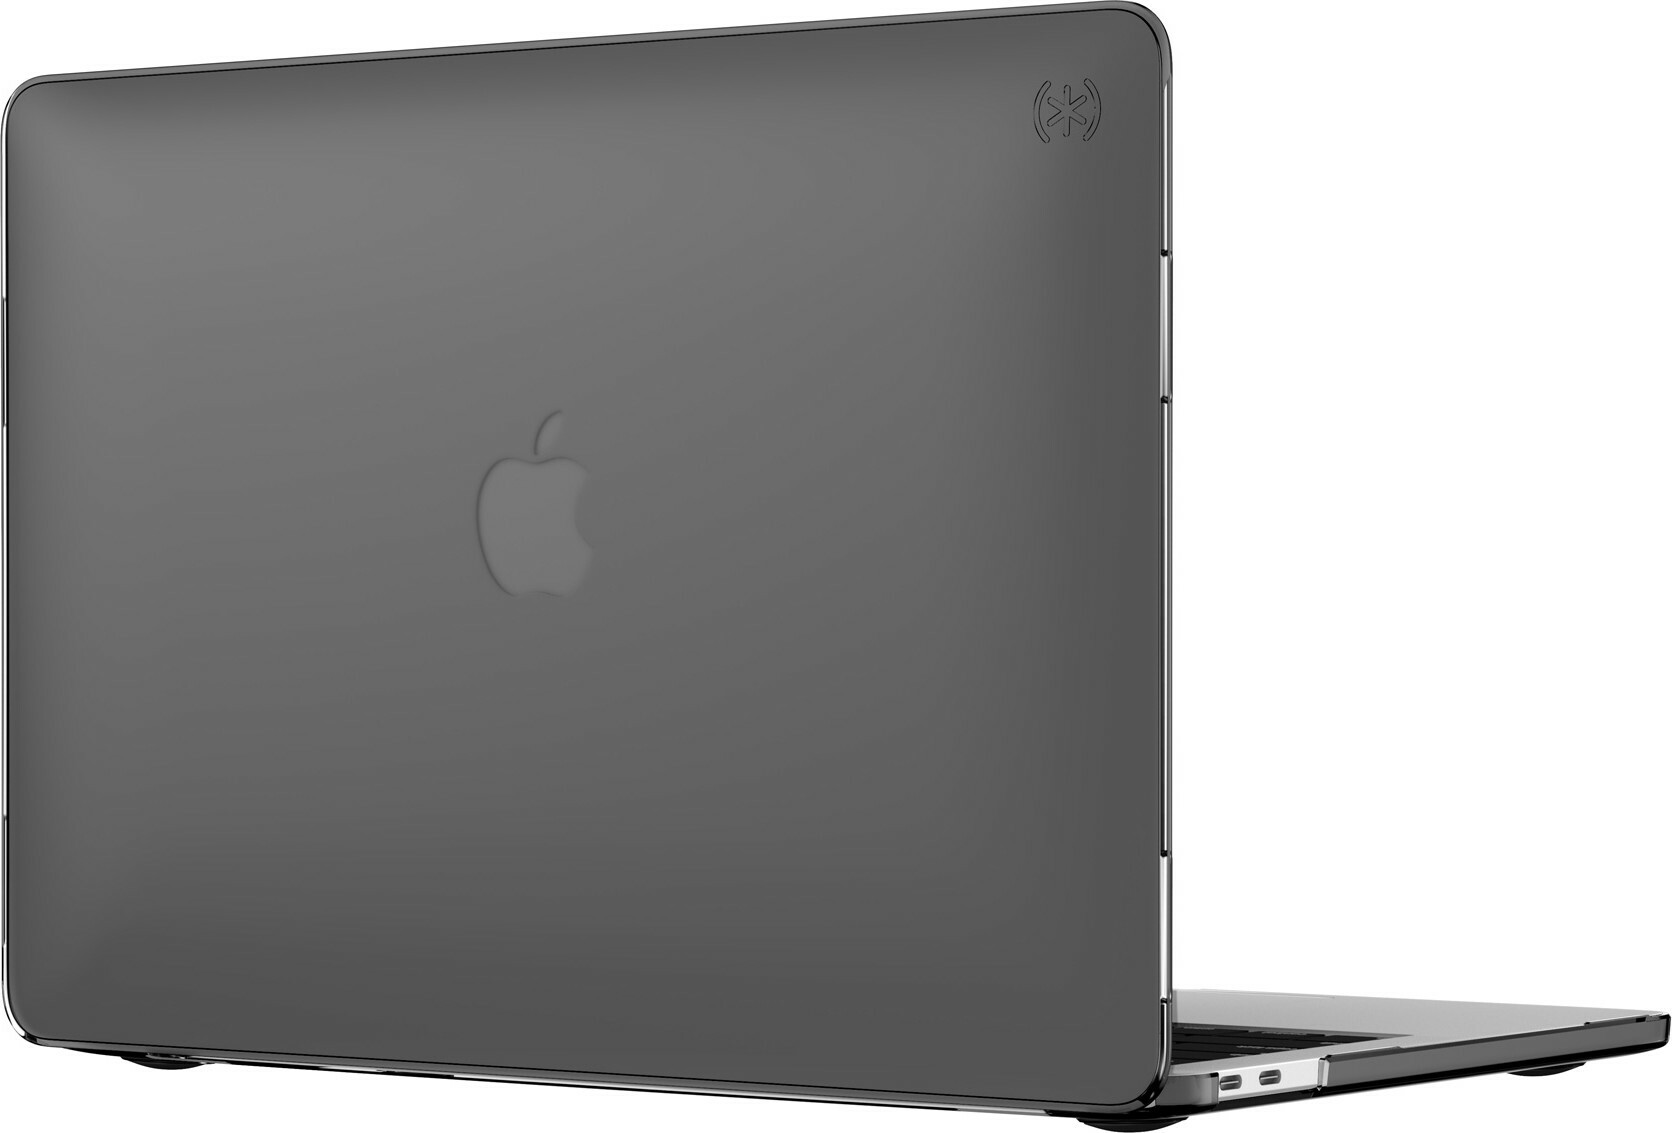 Speck Smartshell Macbook Pro 15 inch w/and without TB Onyx Black